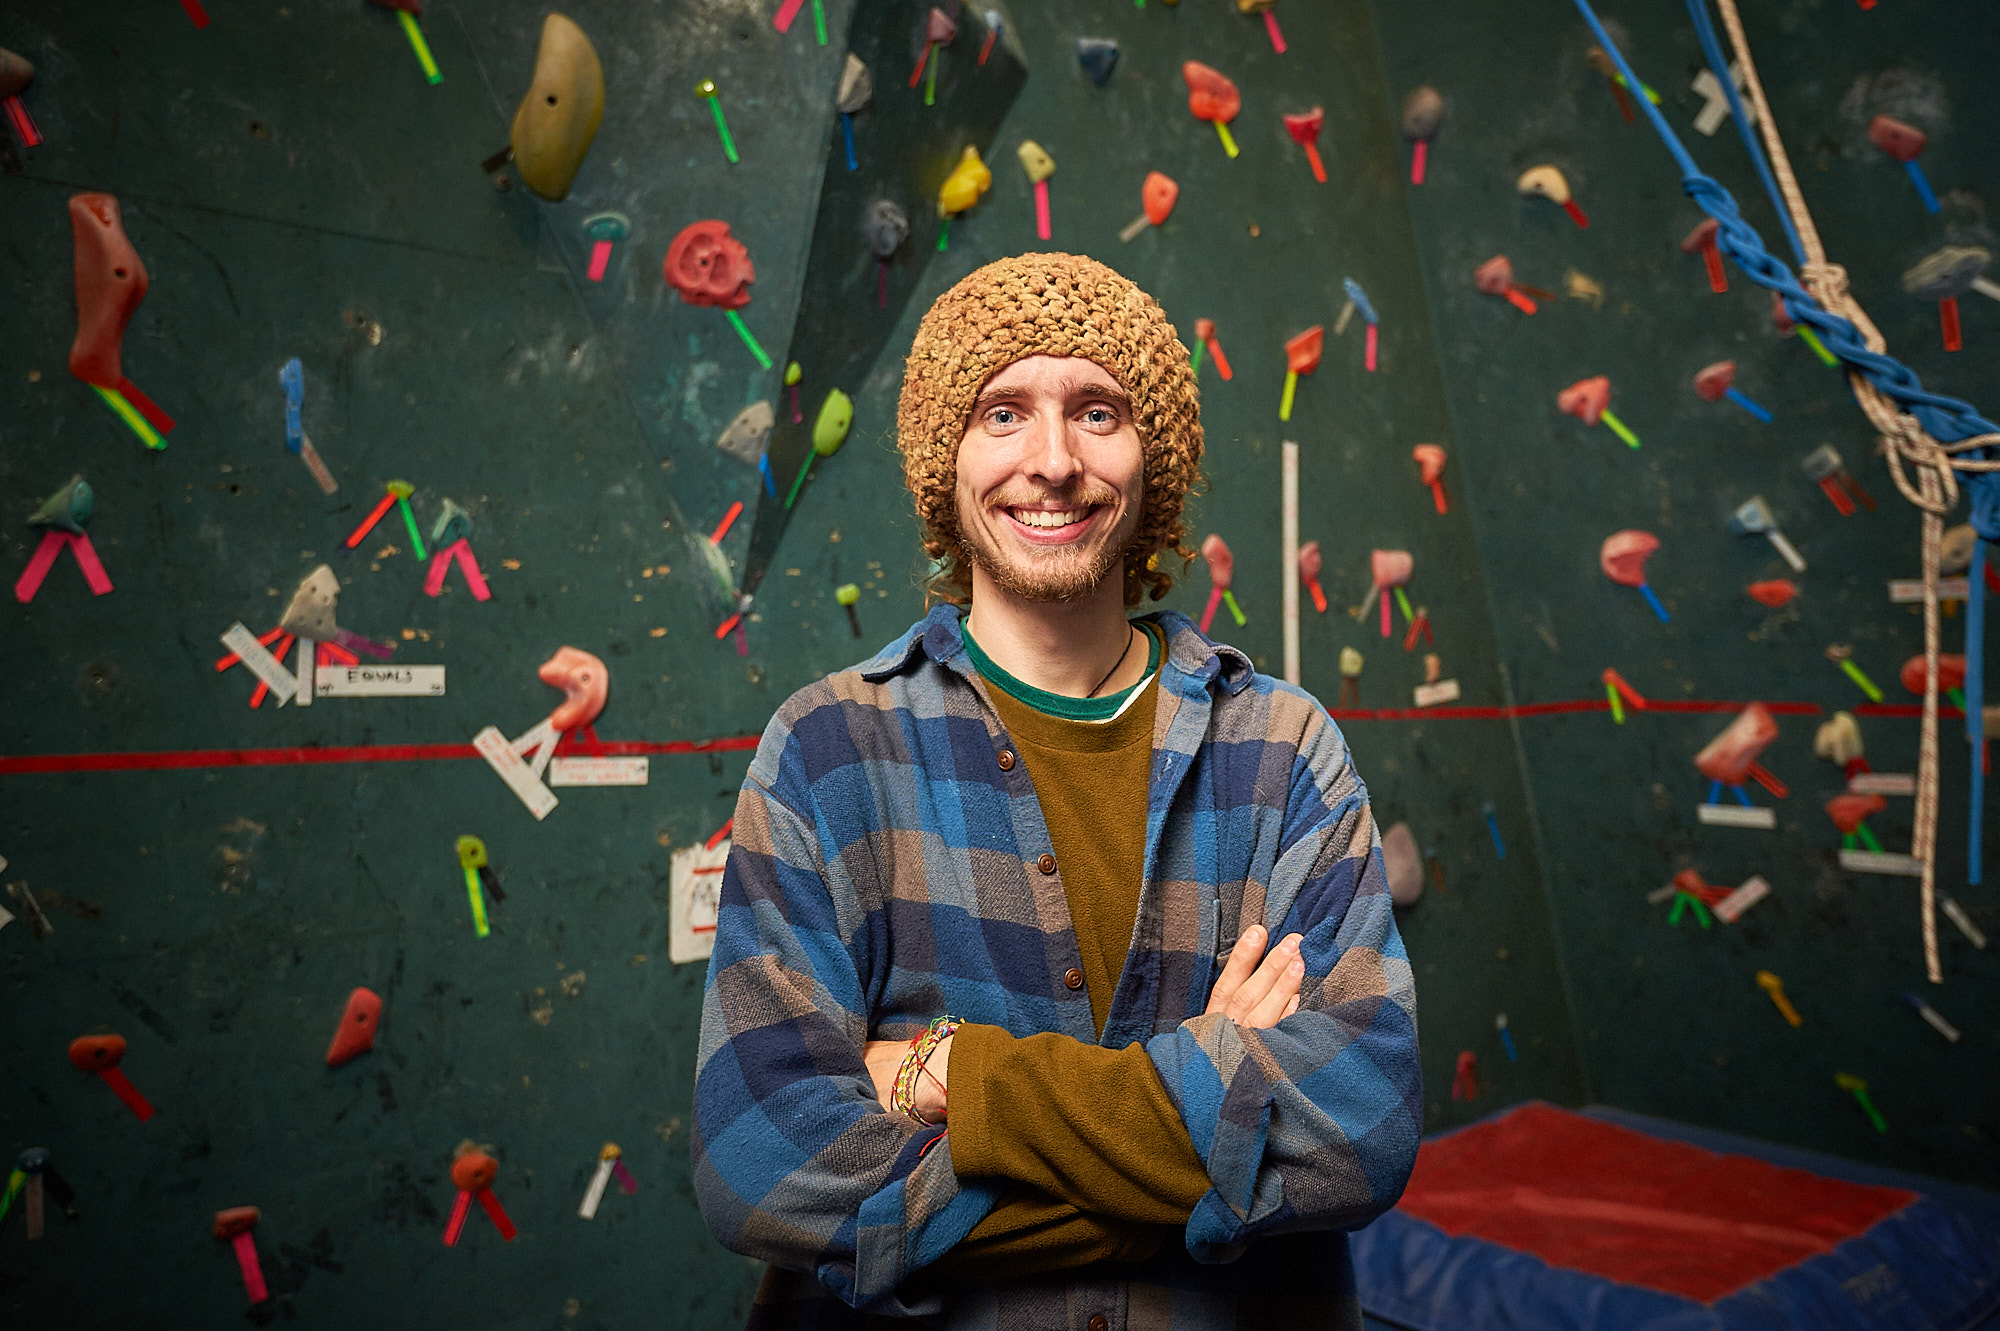 Evan Chartier, Colgate Class of 2014, photographed at the Angert Family Climbing Wall on the Colgate University Campus